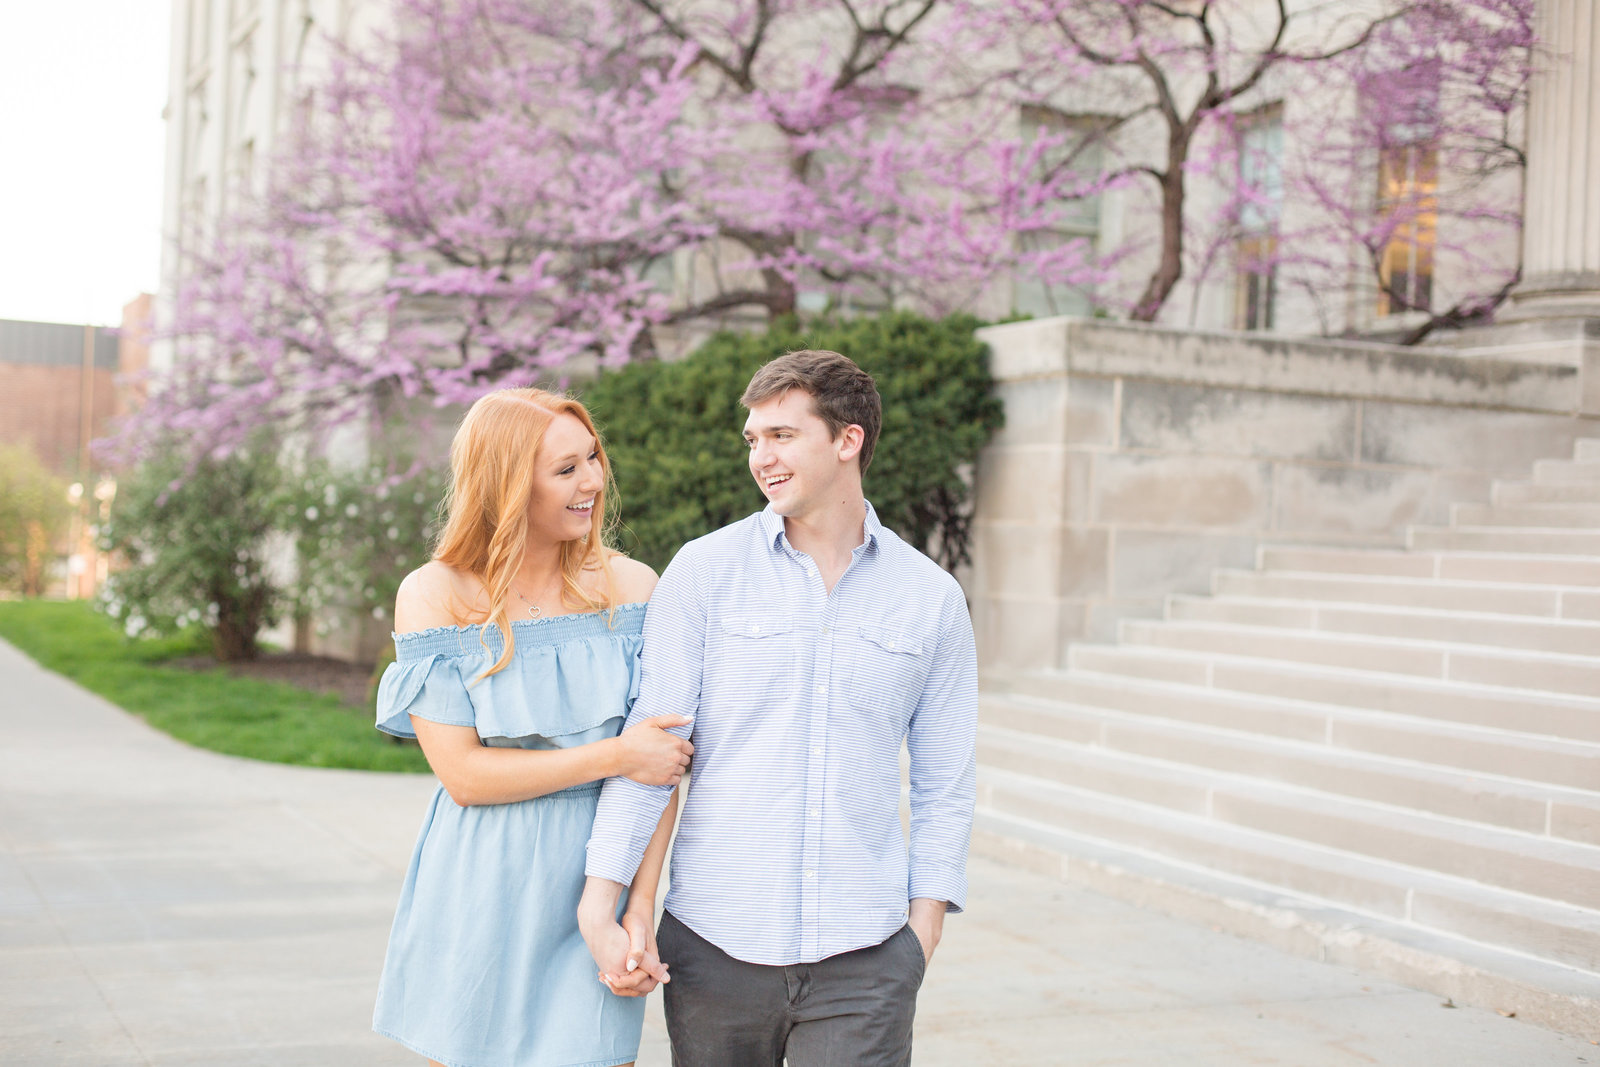 spring-engagement-session-portrait-couple-fiance-wife-photo